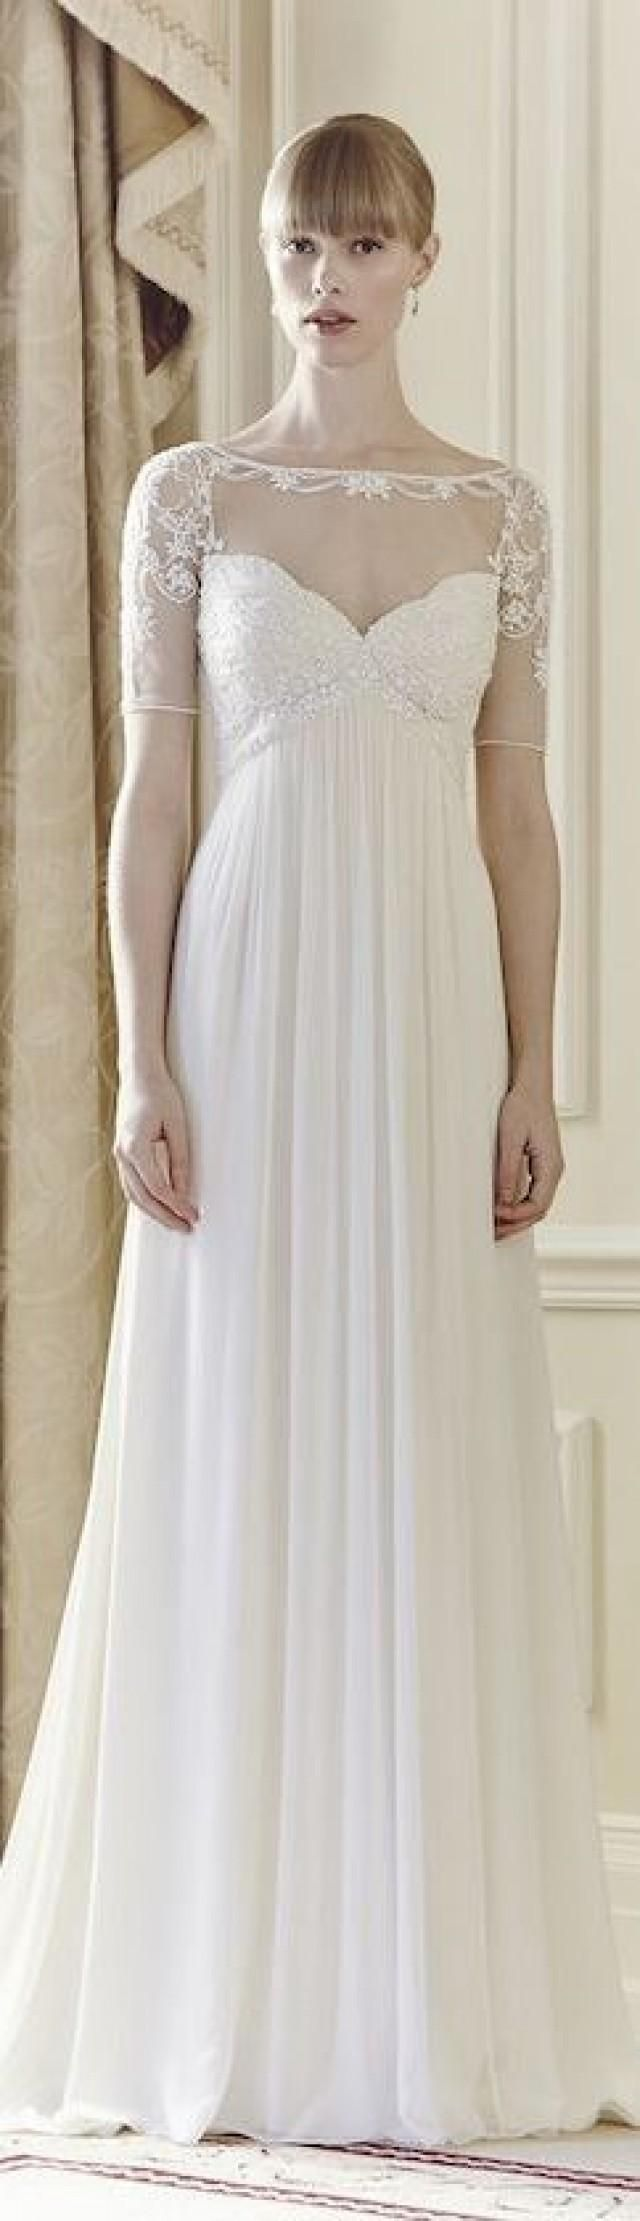 Size 20 wedding dress street size   best  year images on Pinterest  Weddings Engagements and